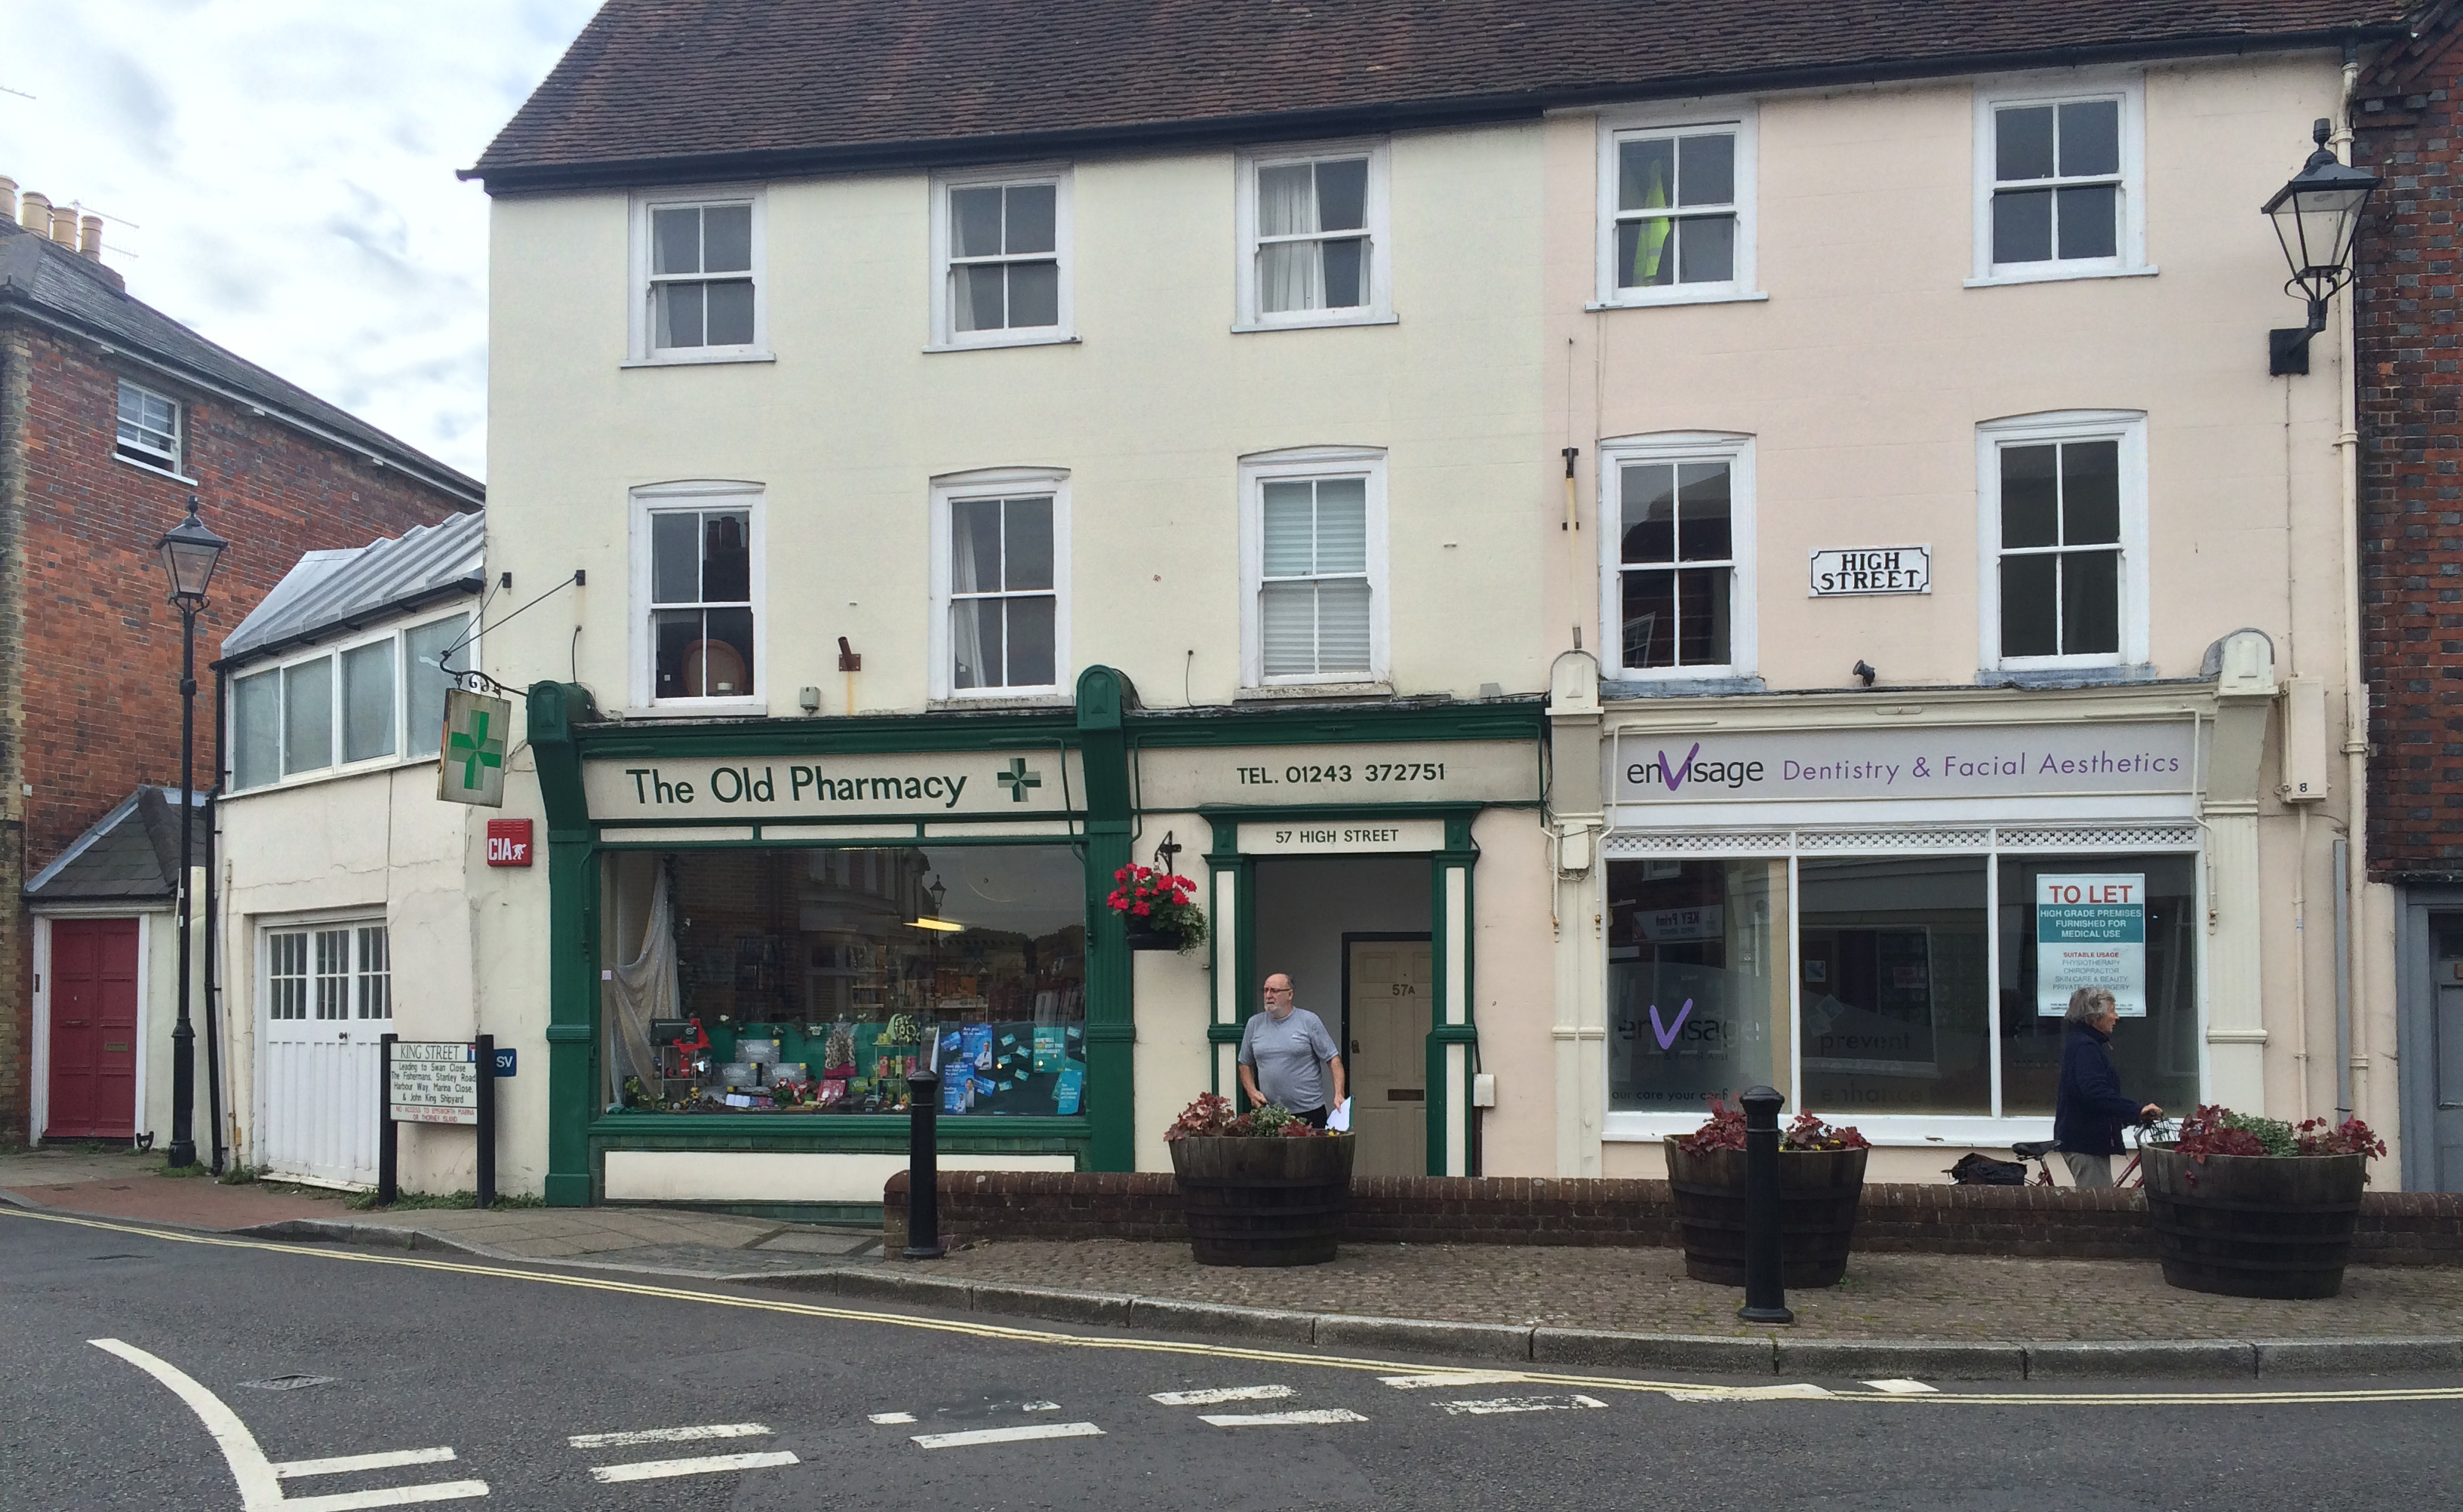 New Sale Completed - 55 High Street, Emsworth